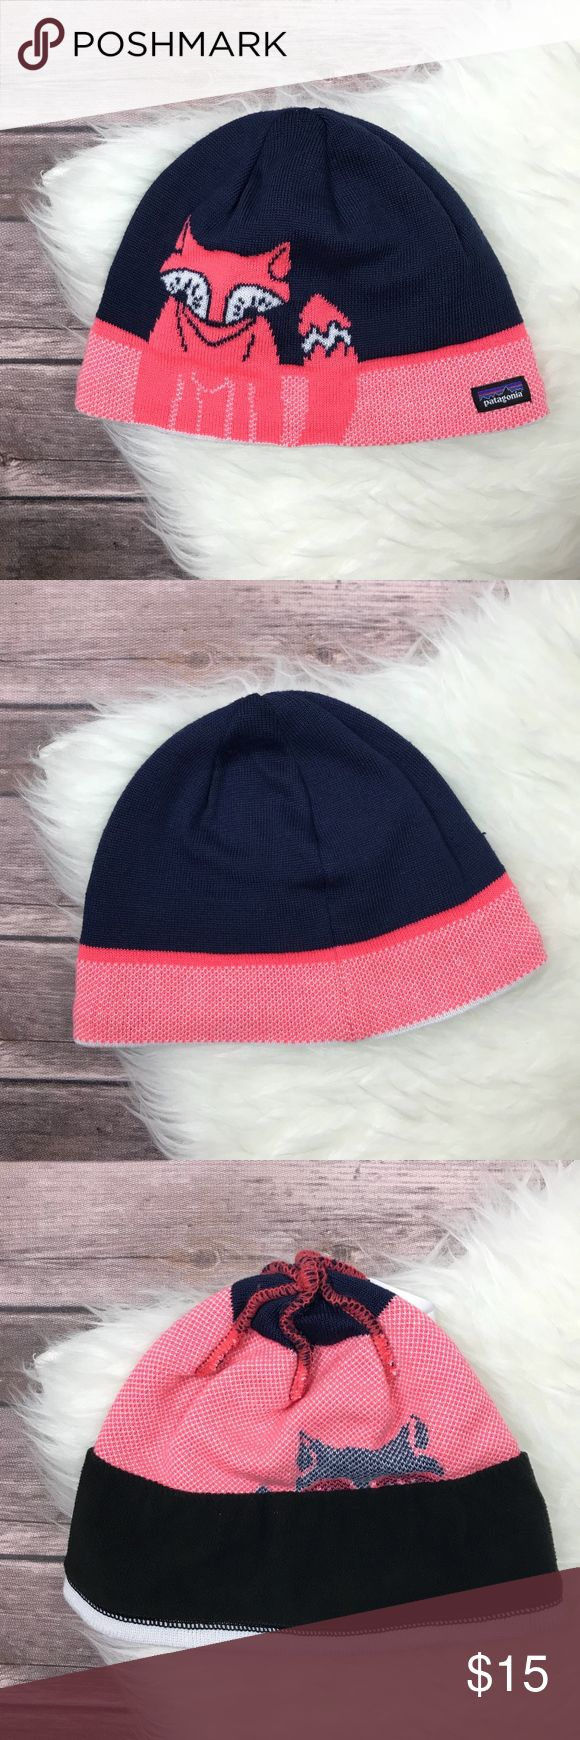 PATAGONIA Beanie Hat Fox Print Navy Pink Fleece Girls' Patagonia beanie in excellent condition! No holes or stains but there is a loose thread (see photo). Fleece lined inner headband, adorable fox print! Patagonia Accessories Hats